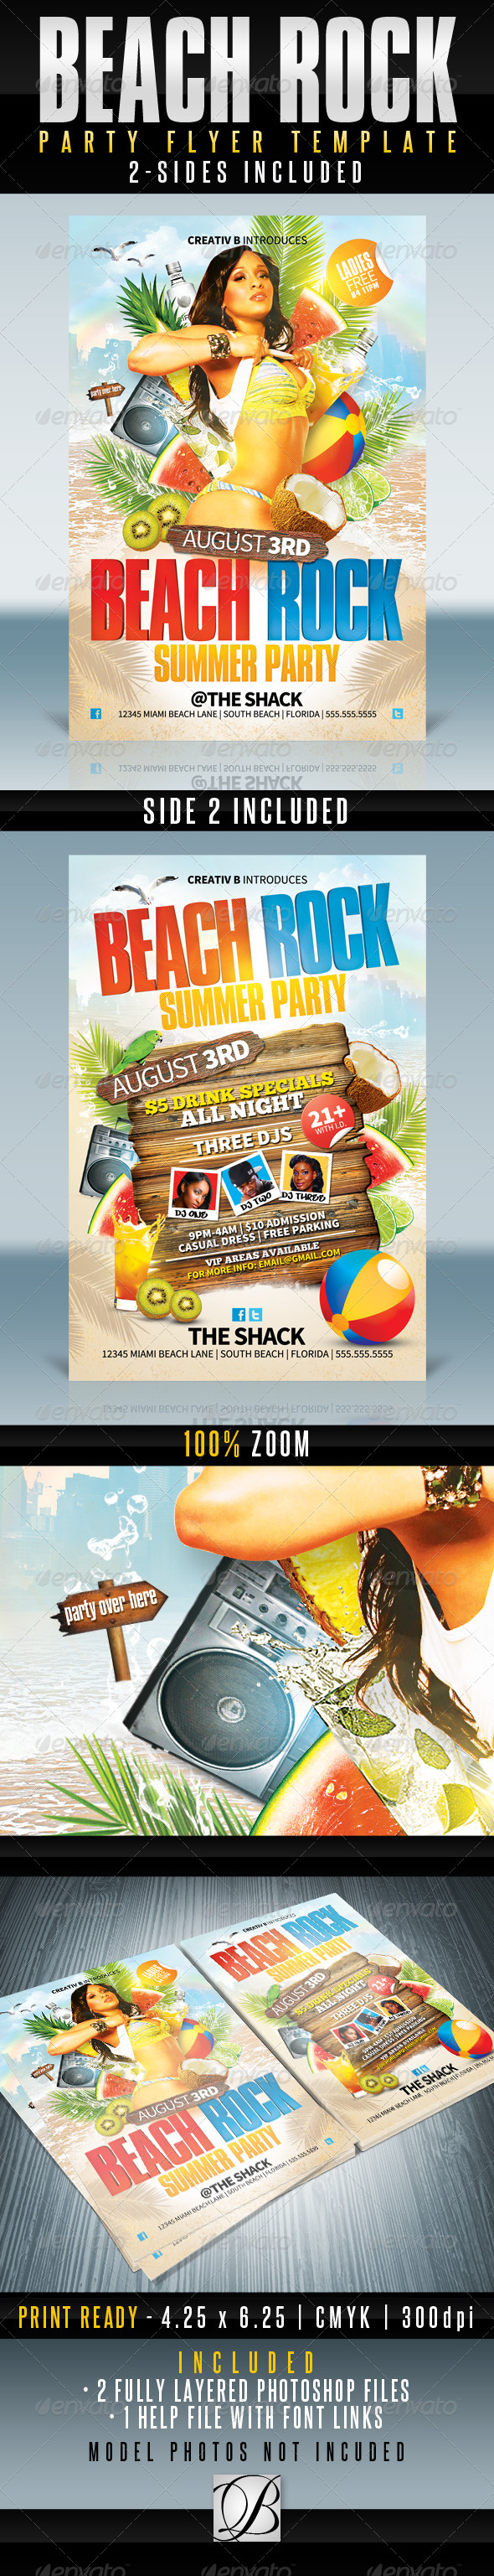 Beach Rock Party Flyer Templates - Clubs & Parties Events